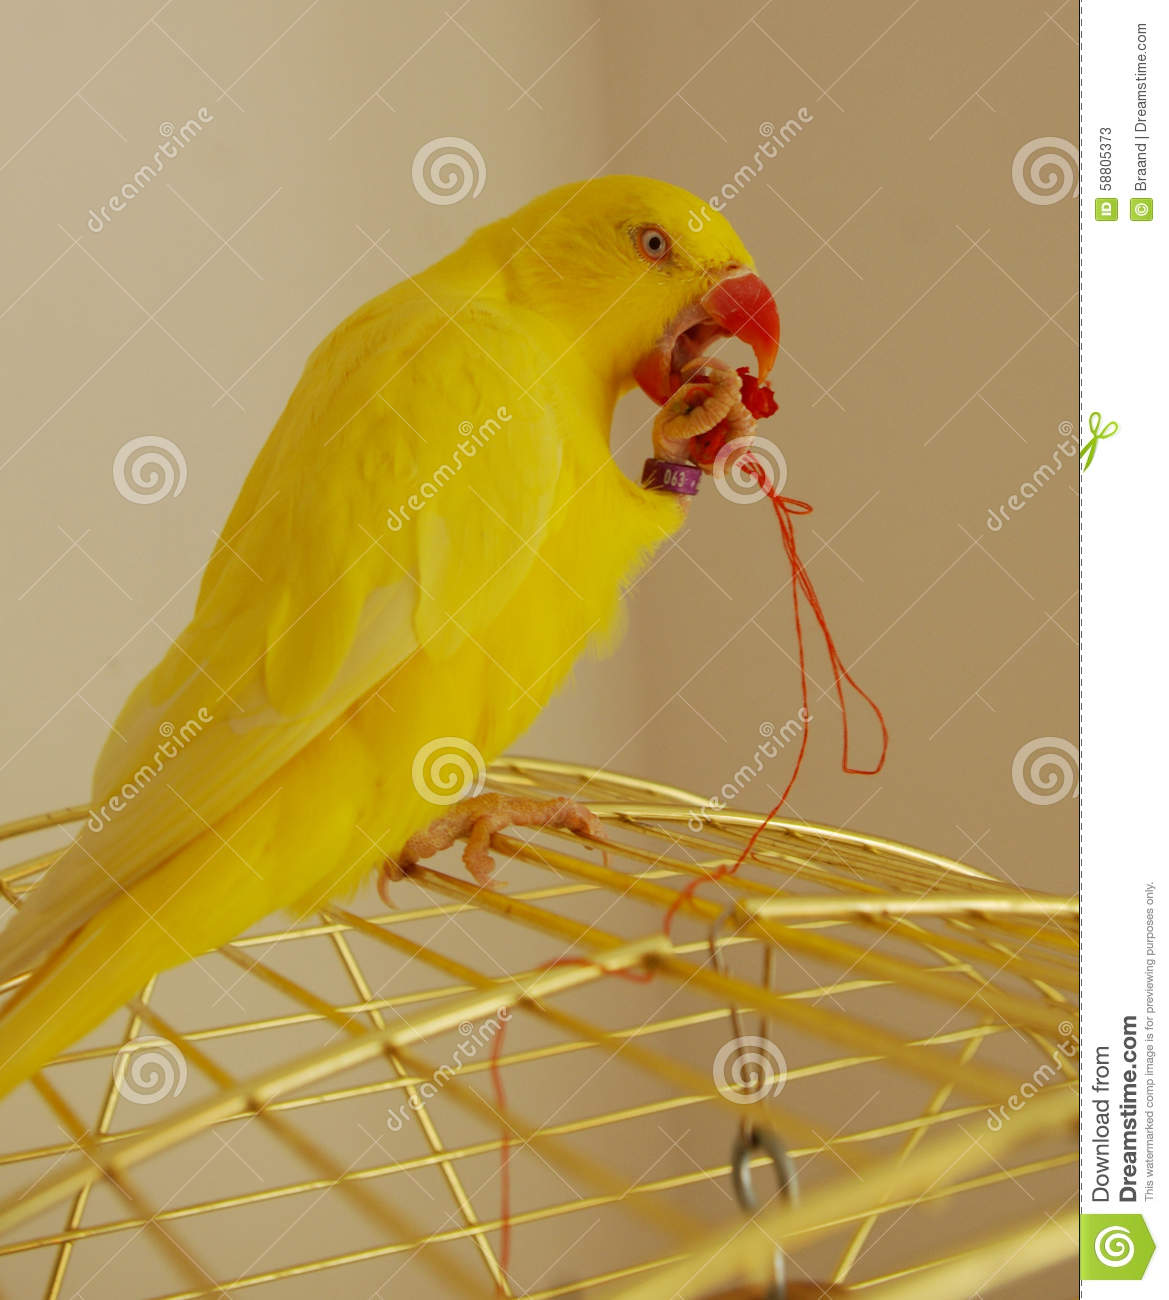 Yellow Ring Neck Parrot clipart #5, Download drawings